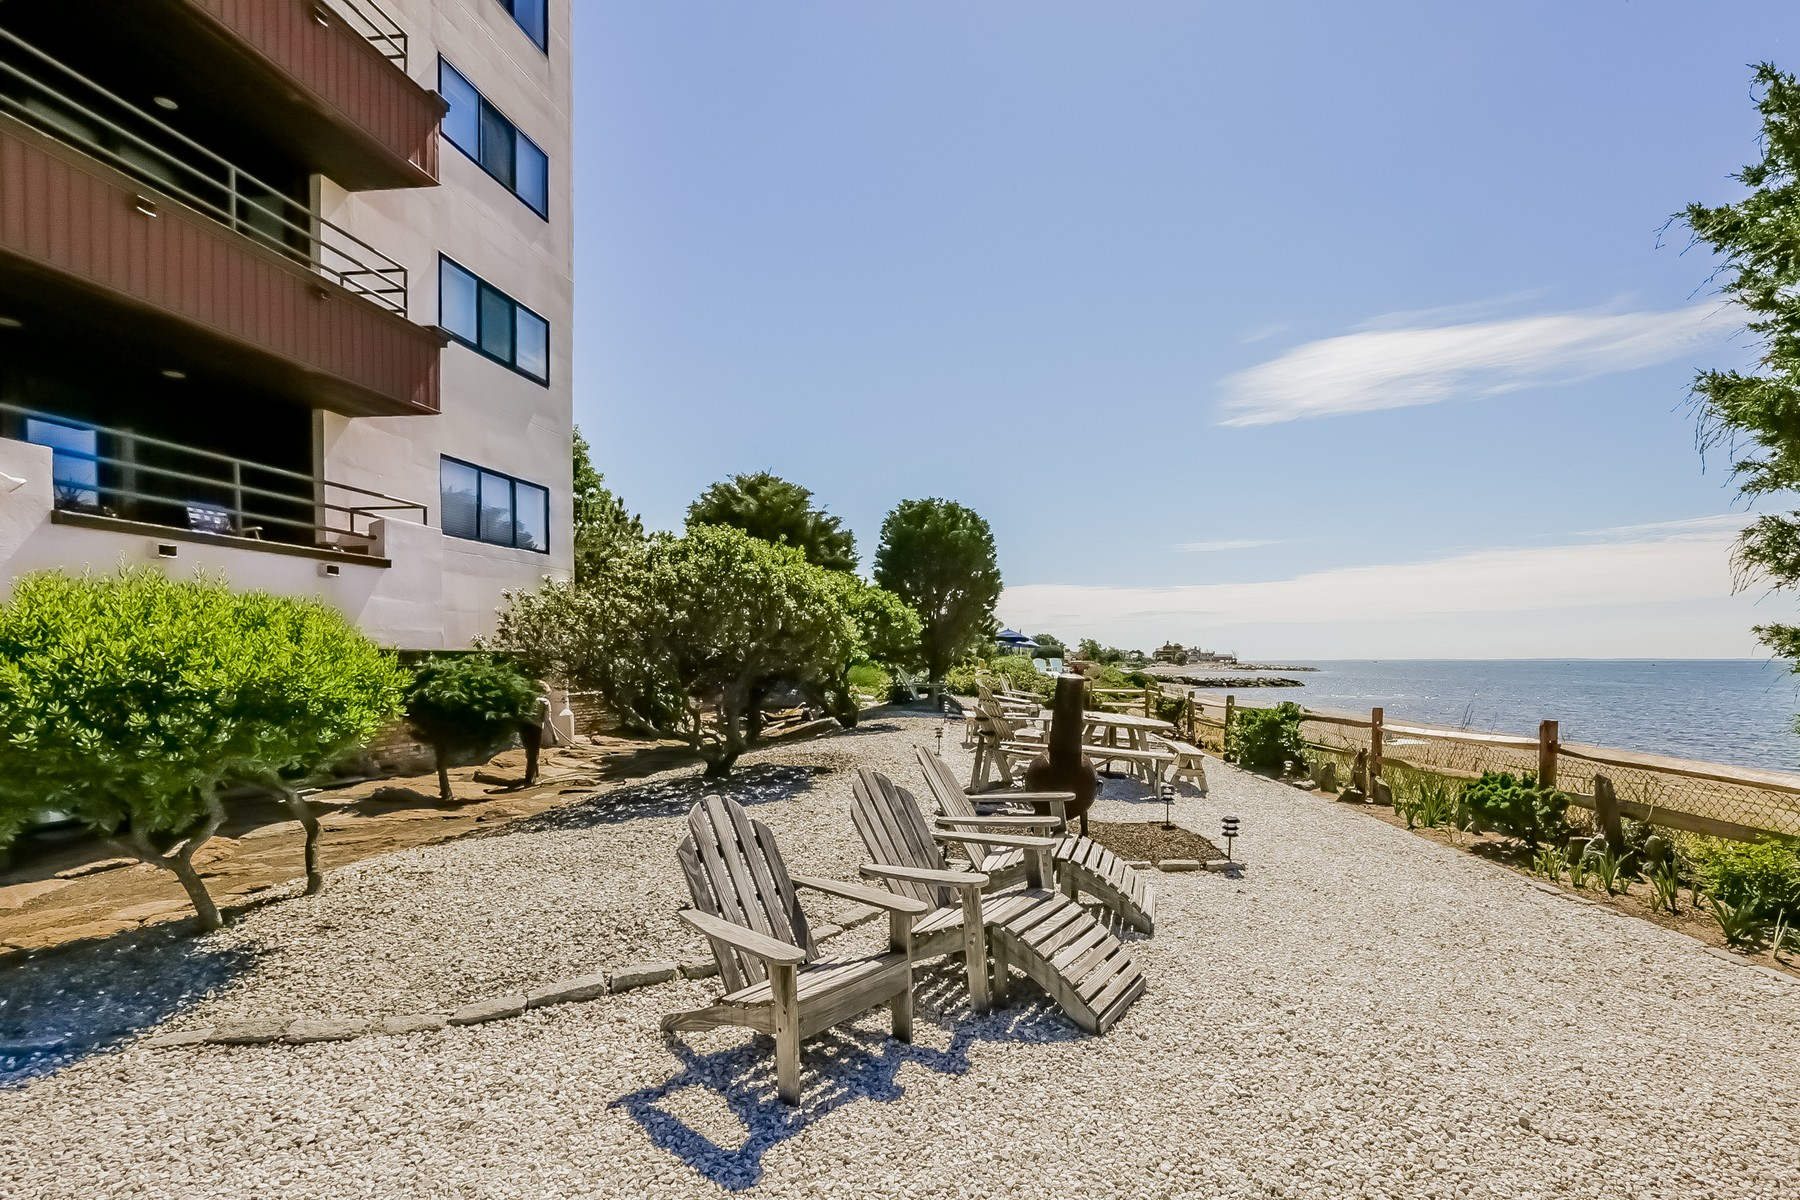 for Sale at Chic Updated Beachfront Front Condo 10 Pine Creek Avenue 301W Fairfield, Connecticut, 06824 United States